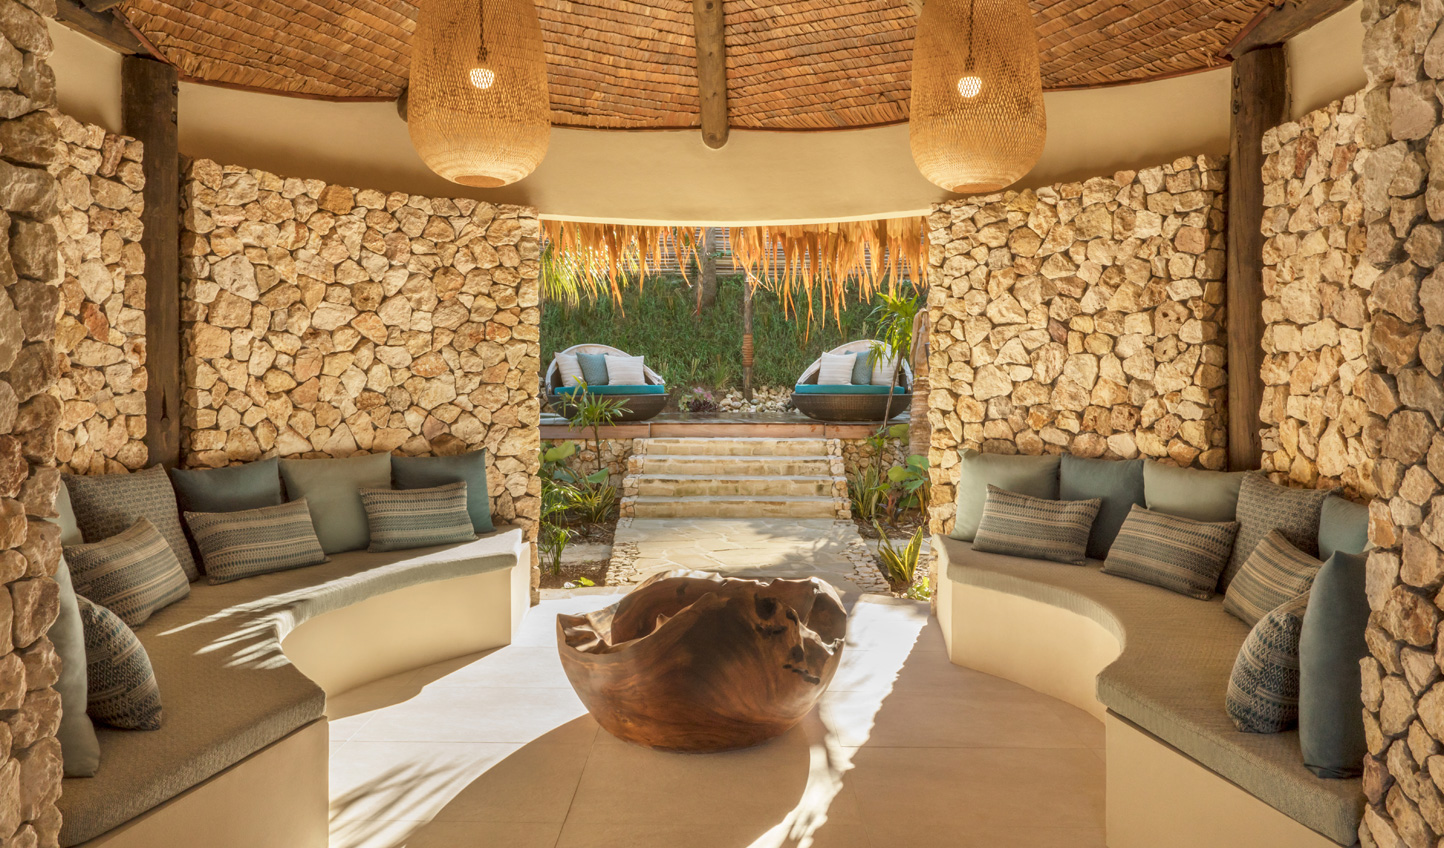 Escape the world at Six Senses Spa and gte back to nature